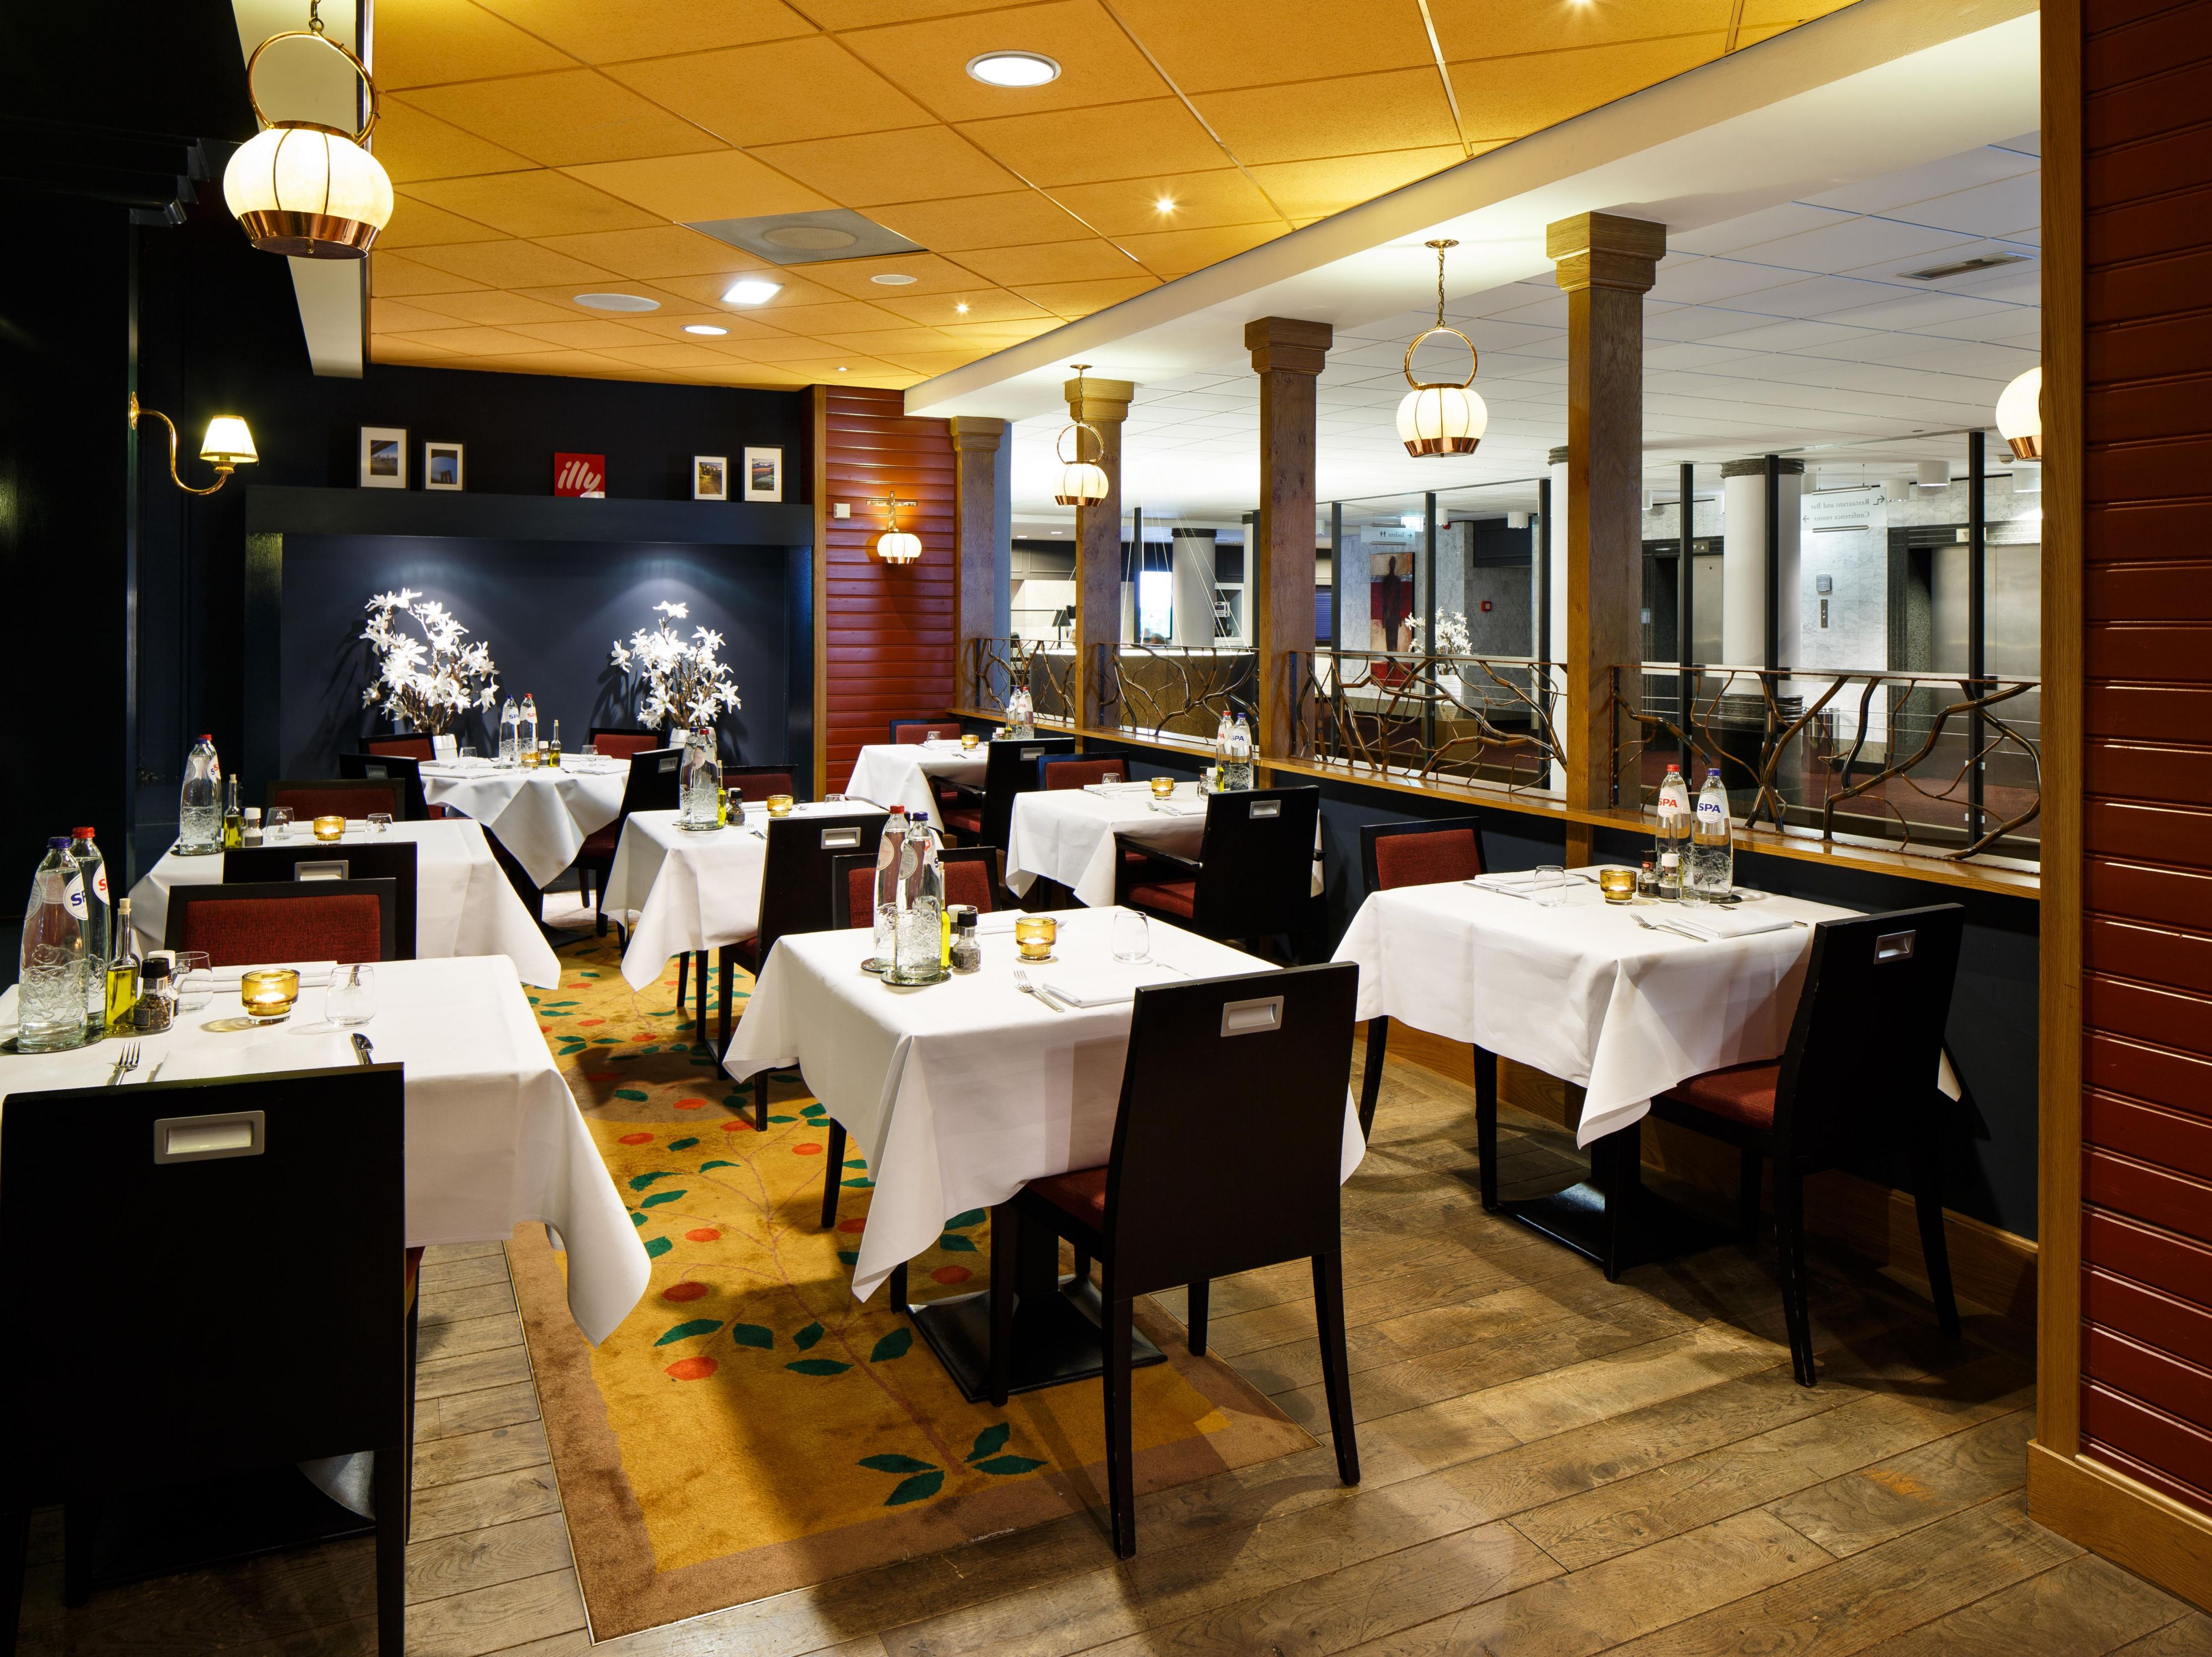 Café New Amsterdam culinary delights inspired by French cuisine